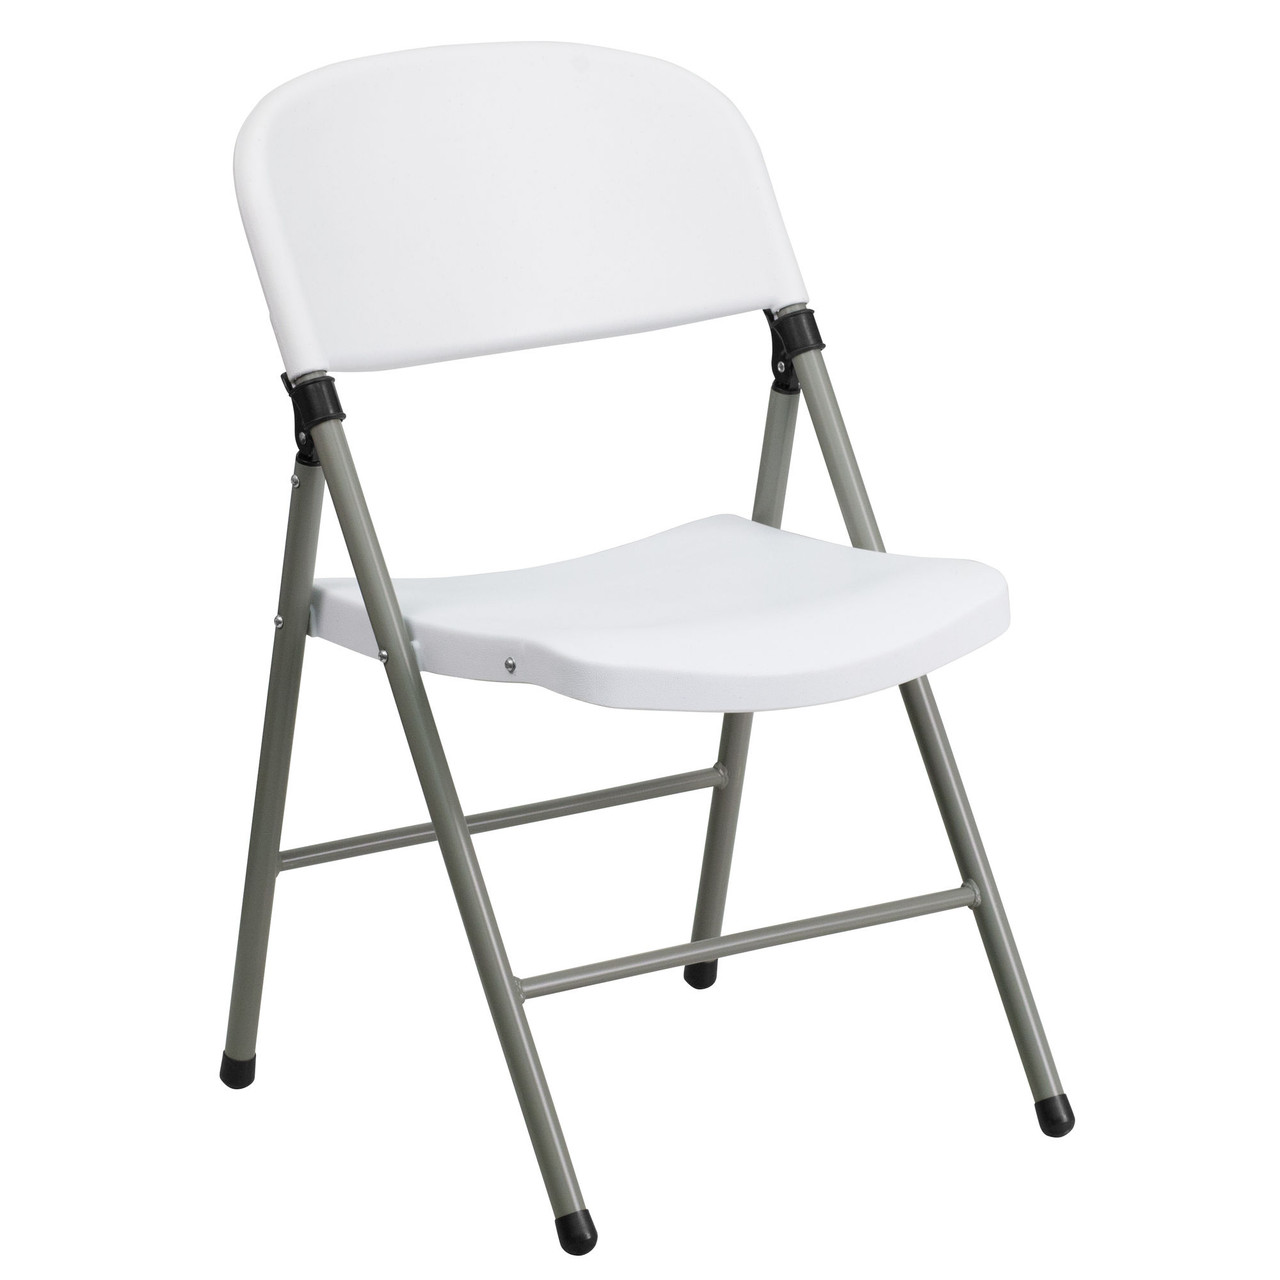 Brilliant Advantage White Poly Folding Chair Oversized With Gray Frame Dad Ycd 70 Wh Gg Uwap Interior Chair Design Uwaporg